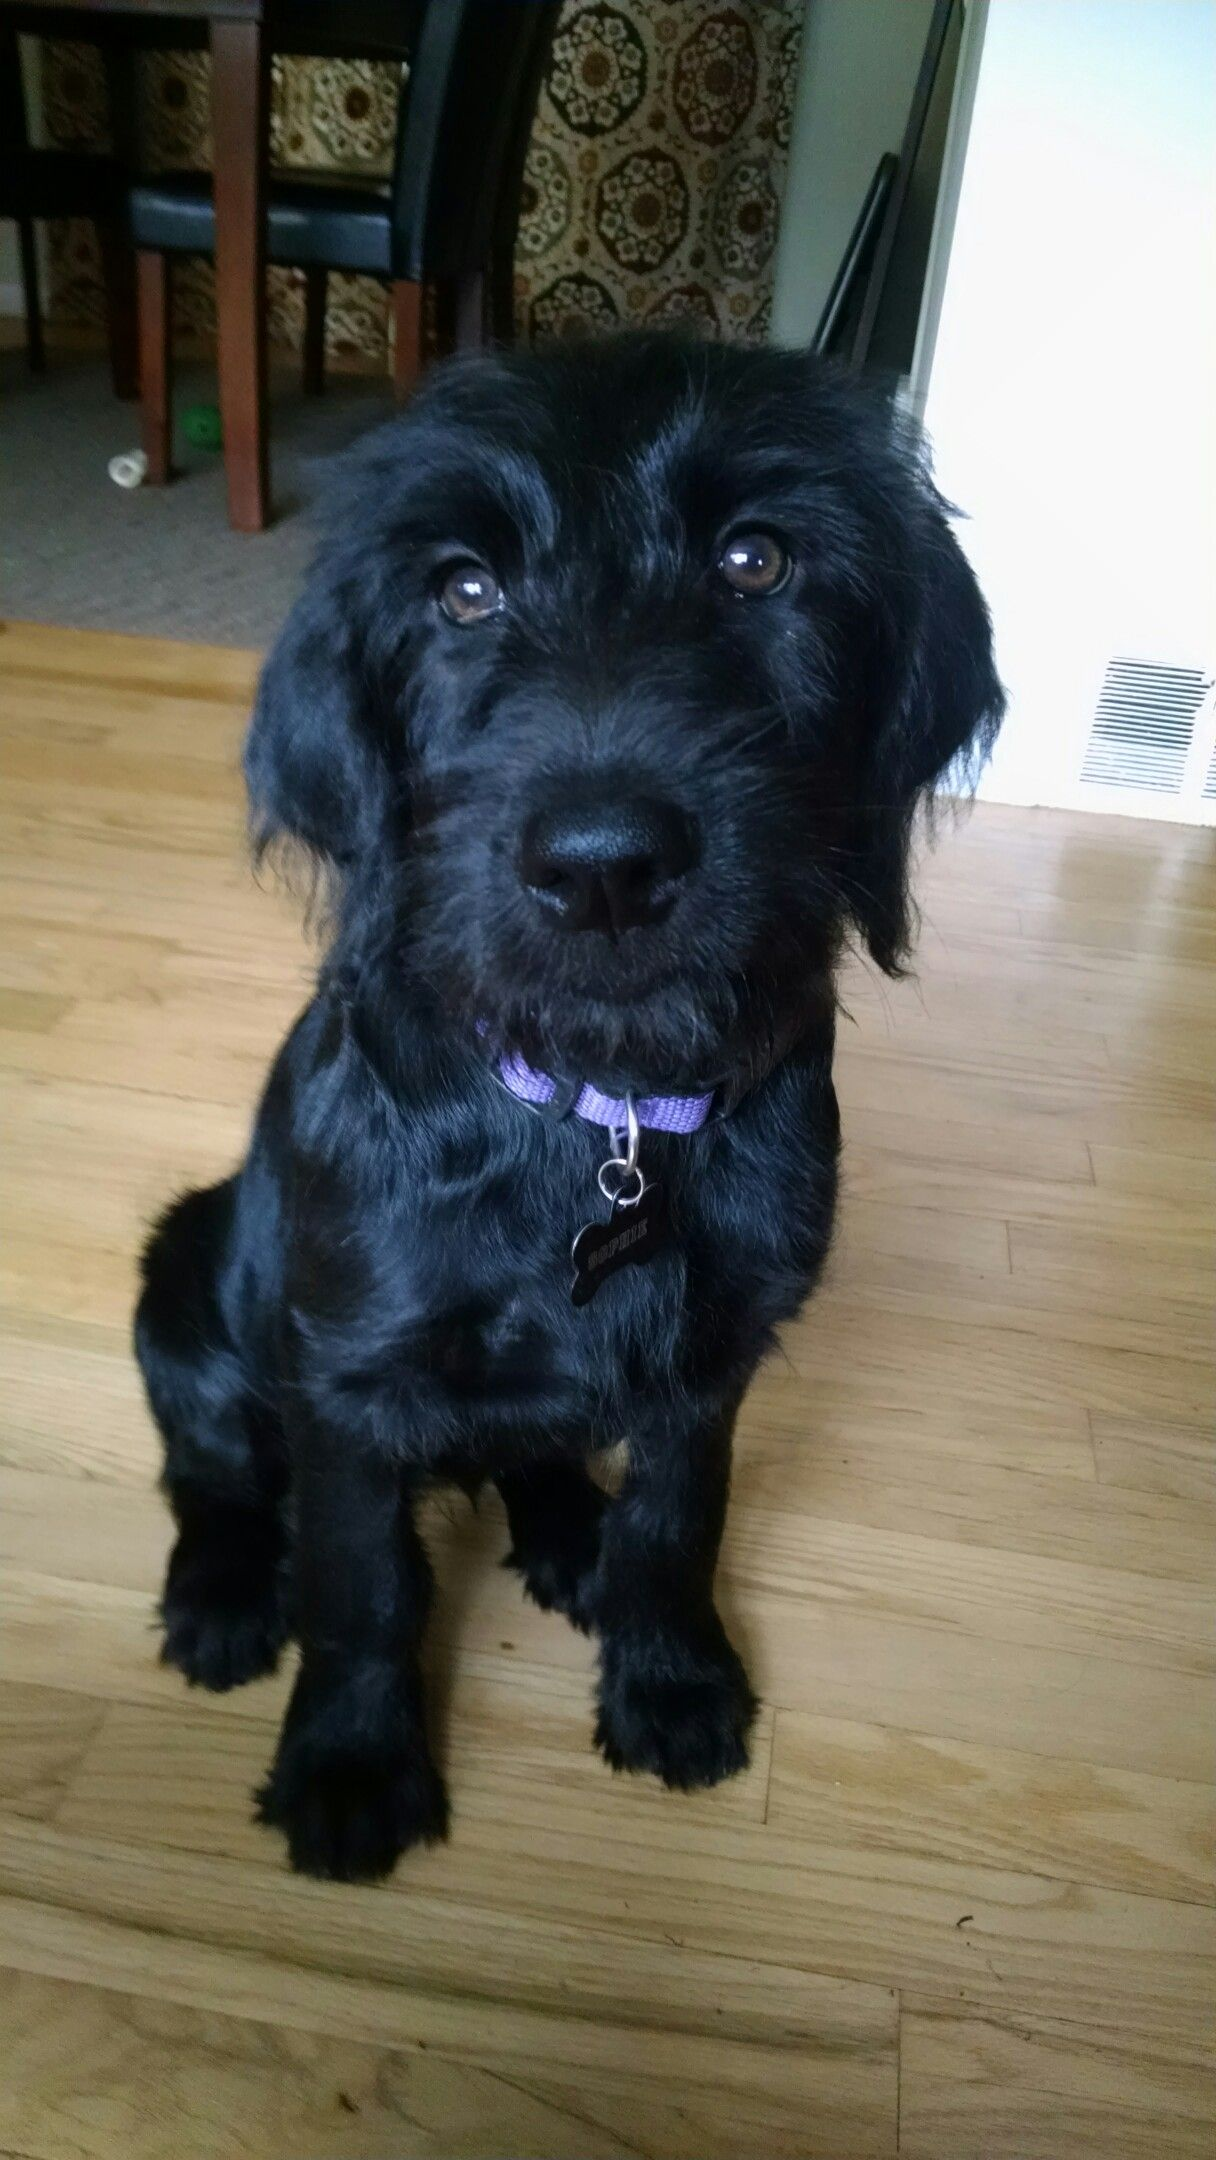 F1 Black Labradoodle Puppy Those Eyes